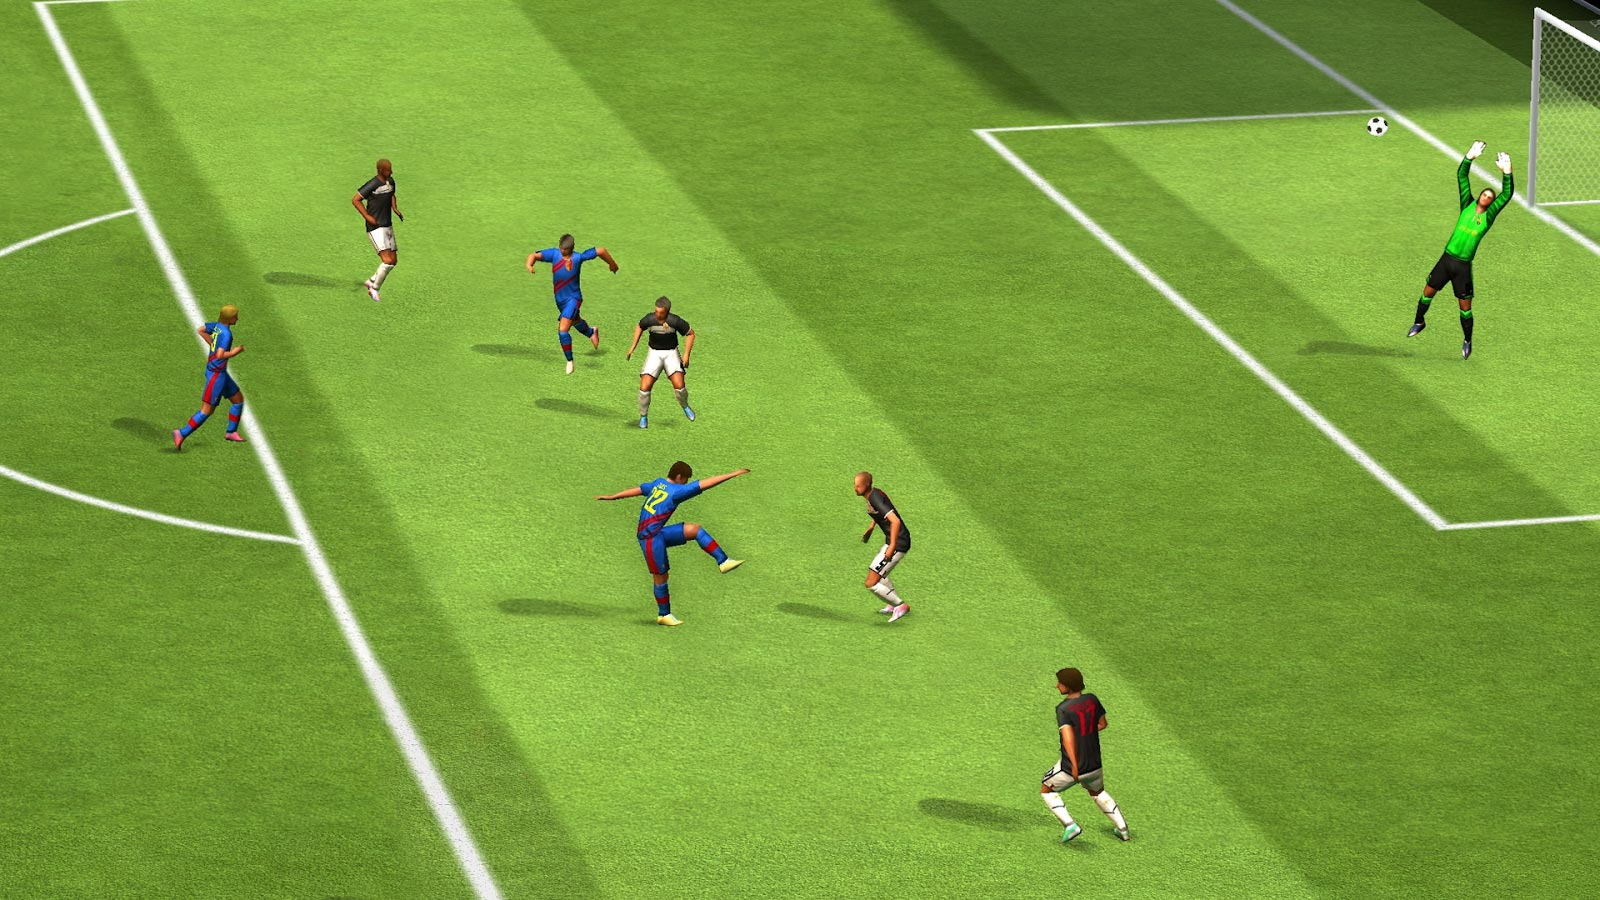 Download best football or soccer games for android in 2014 - Real Football 2013 For Android Download